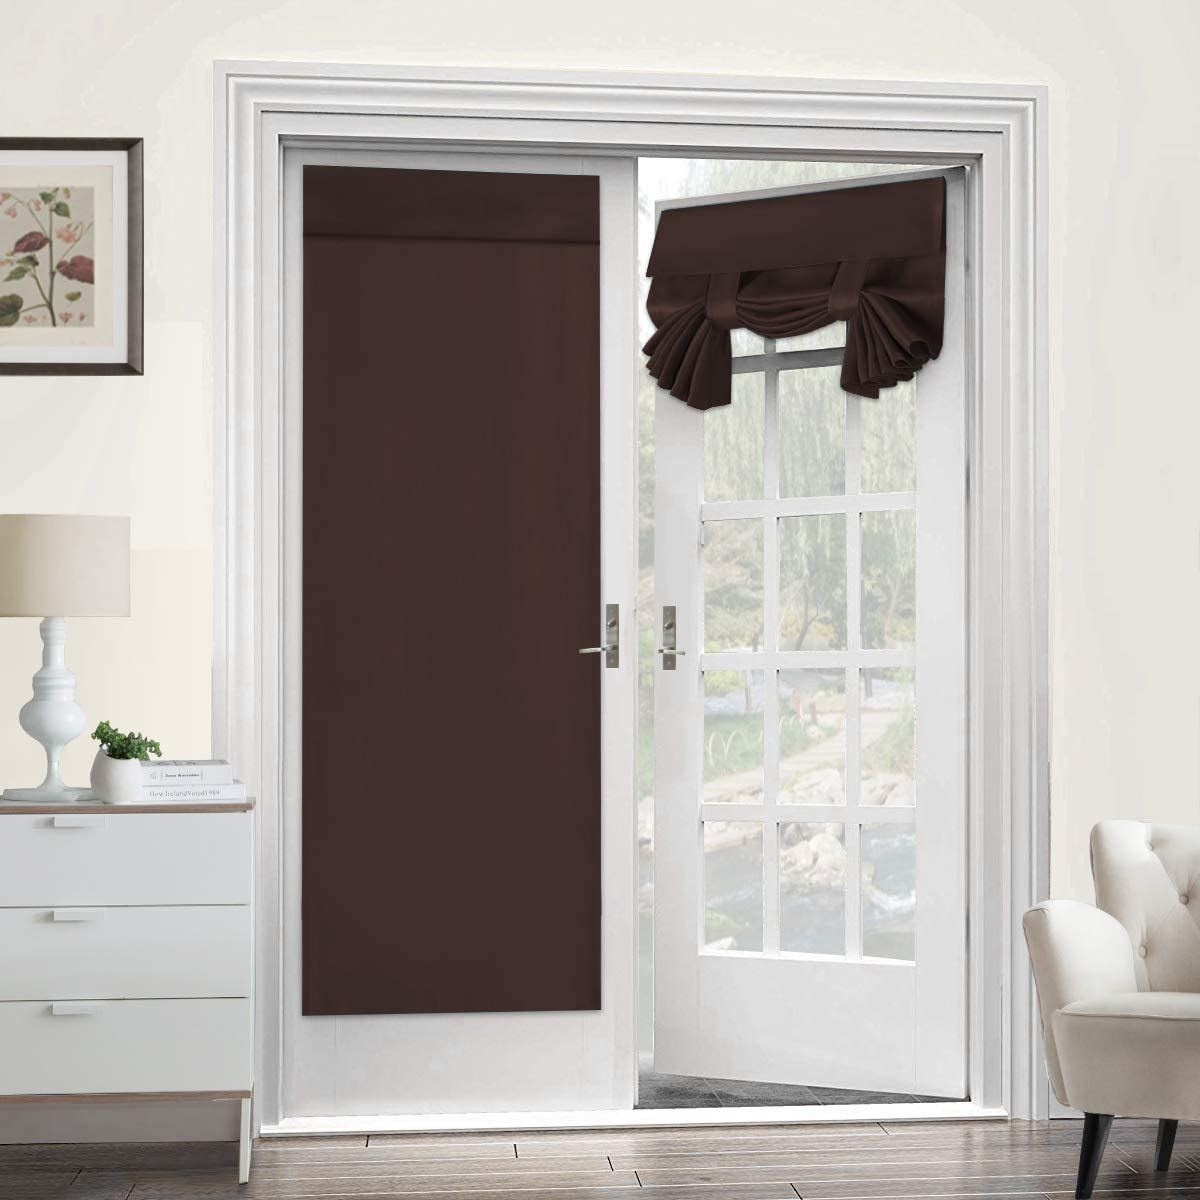 Blackout Curtain for French Doors - Thermal Insulated Blackout Glass Door Curtain Panel Tricia Curtain for Door Window Curtains, 2 Panel, 26 x 68 Inches, Brown